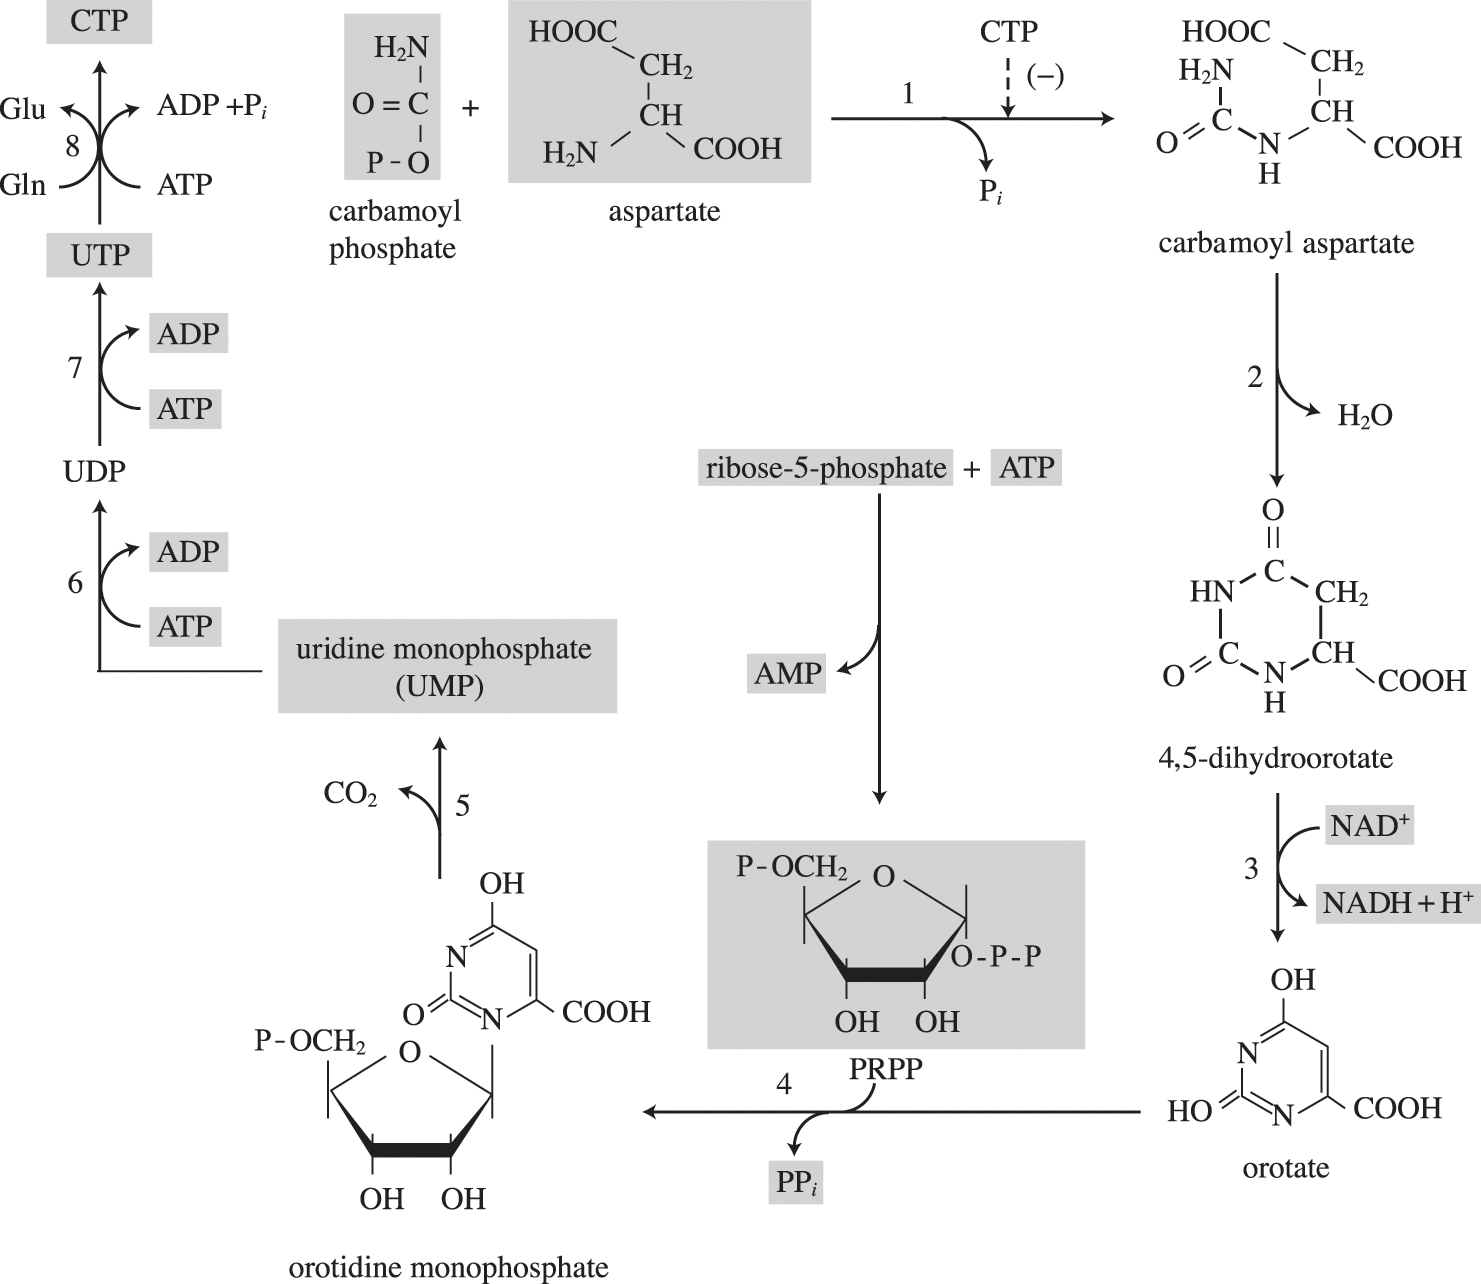 Biosynthesis and growth (Chapter 6) - Prokaryotic Metabolism